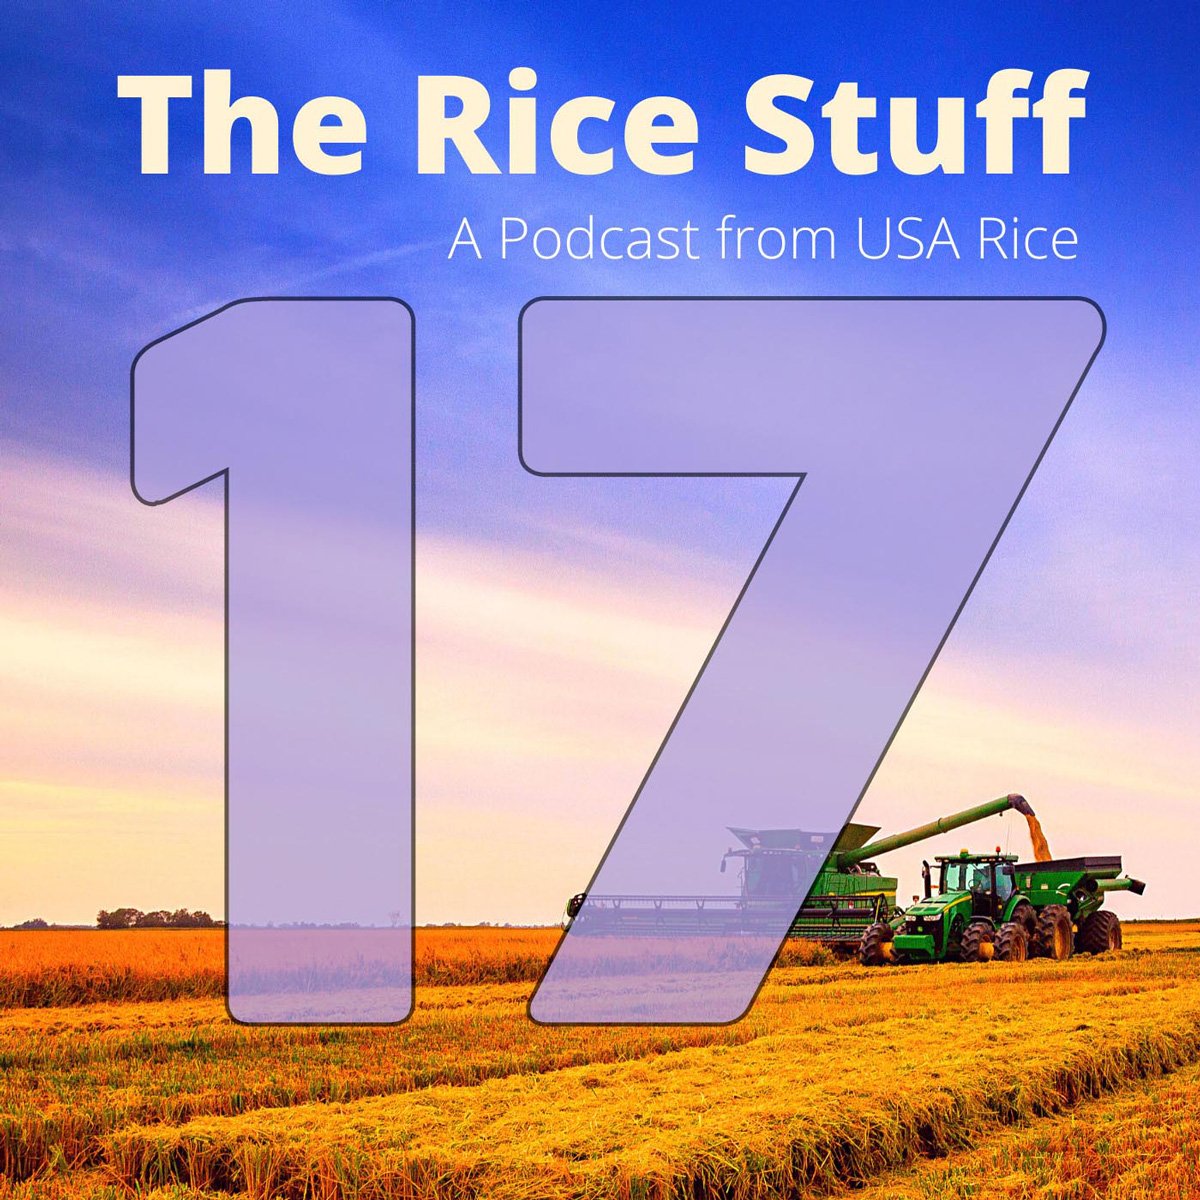 Number 17 superimposed over photo of combine and grain cart in mature rice field